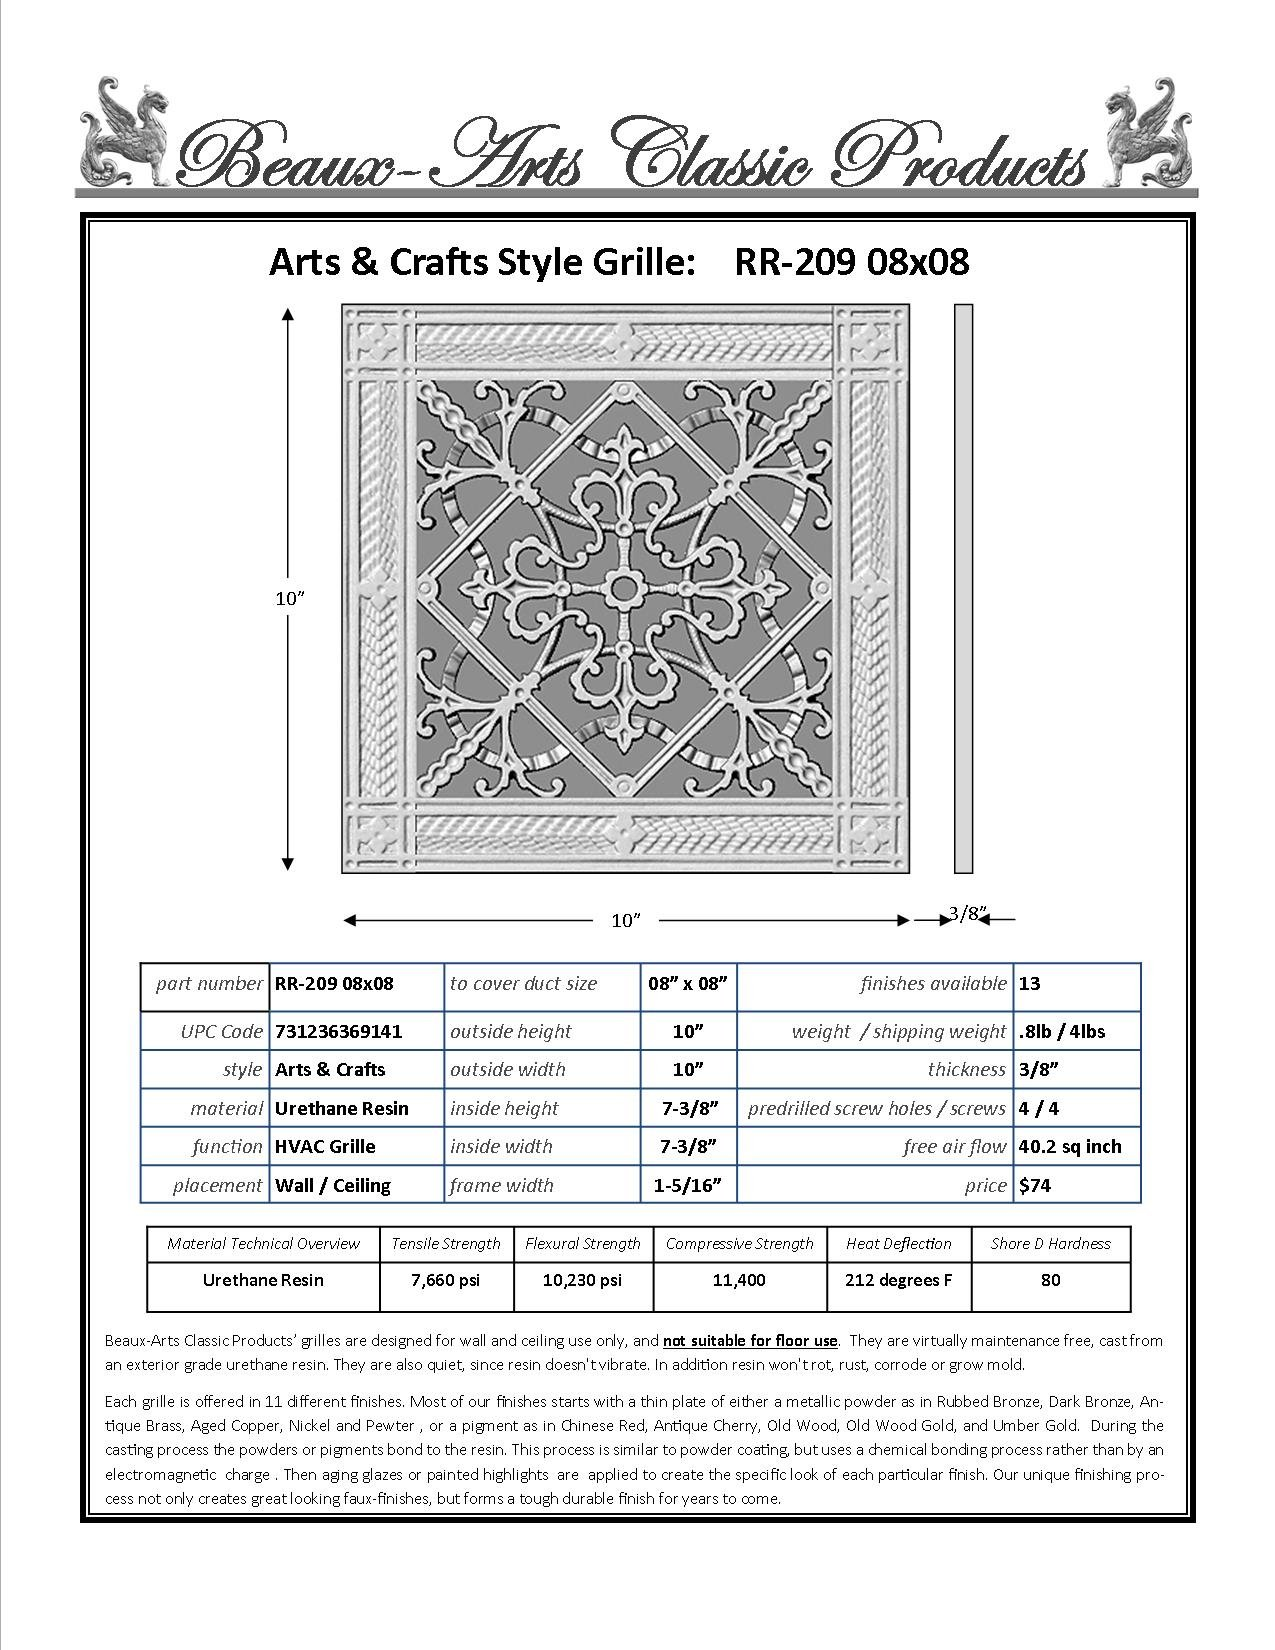 "Decorative Grille, Vent Cover, or Return Air Register. Made of Urethane Resin to fit over a 8''x8'' duct or opening. Total size of vent is 10""x10''x3/8'', for wall & ceiling grilles (not for floor use) by Beaux-Artes, Ltd. (Image #2)"